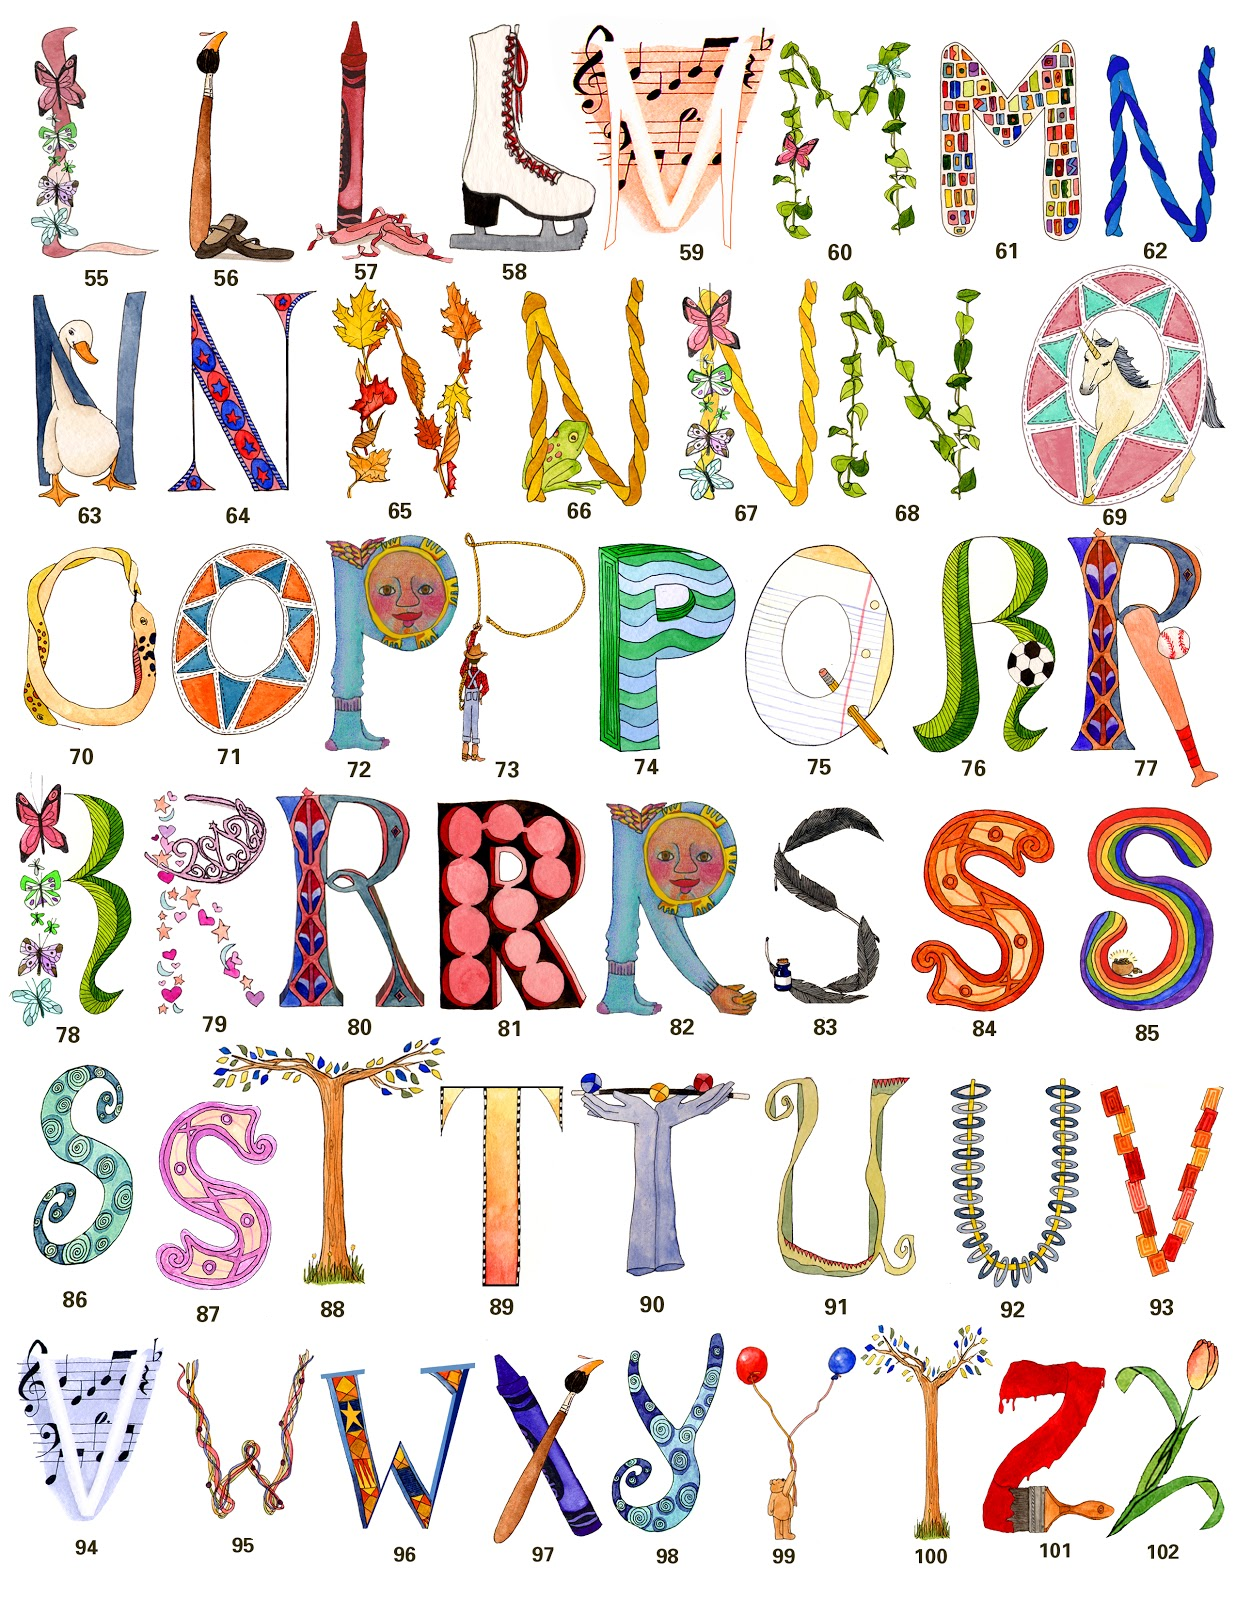 alphabet letter own arts names painting lettering artwork drawings paintings giveaway whimsical letters frugal drawing frugalphillymom philly closed mom calligraphy